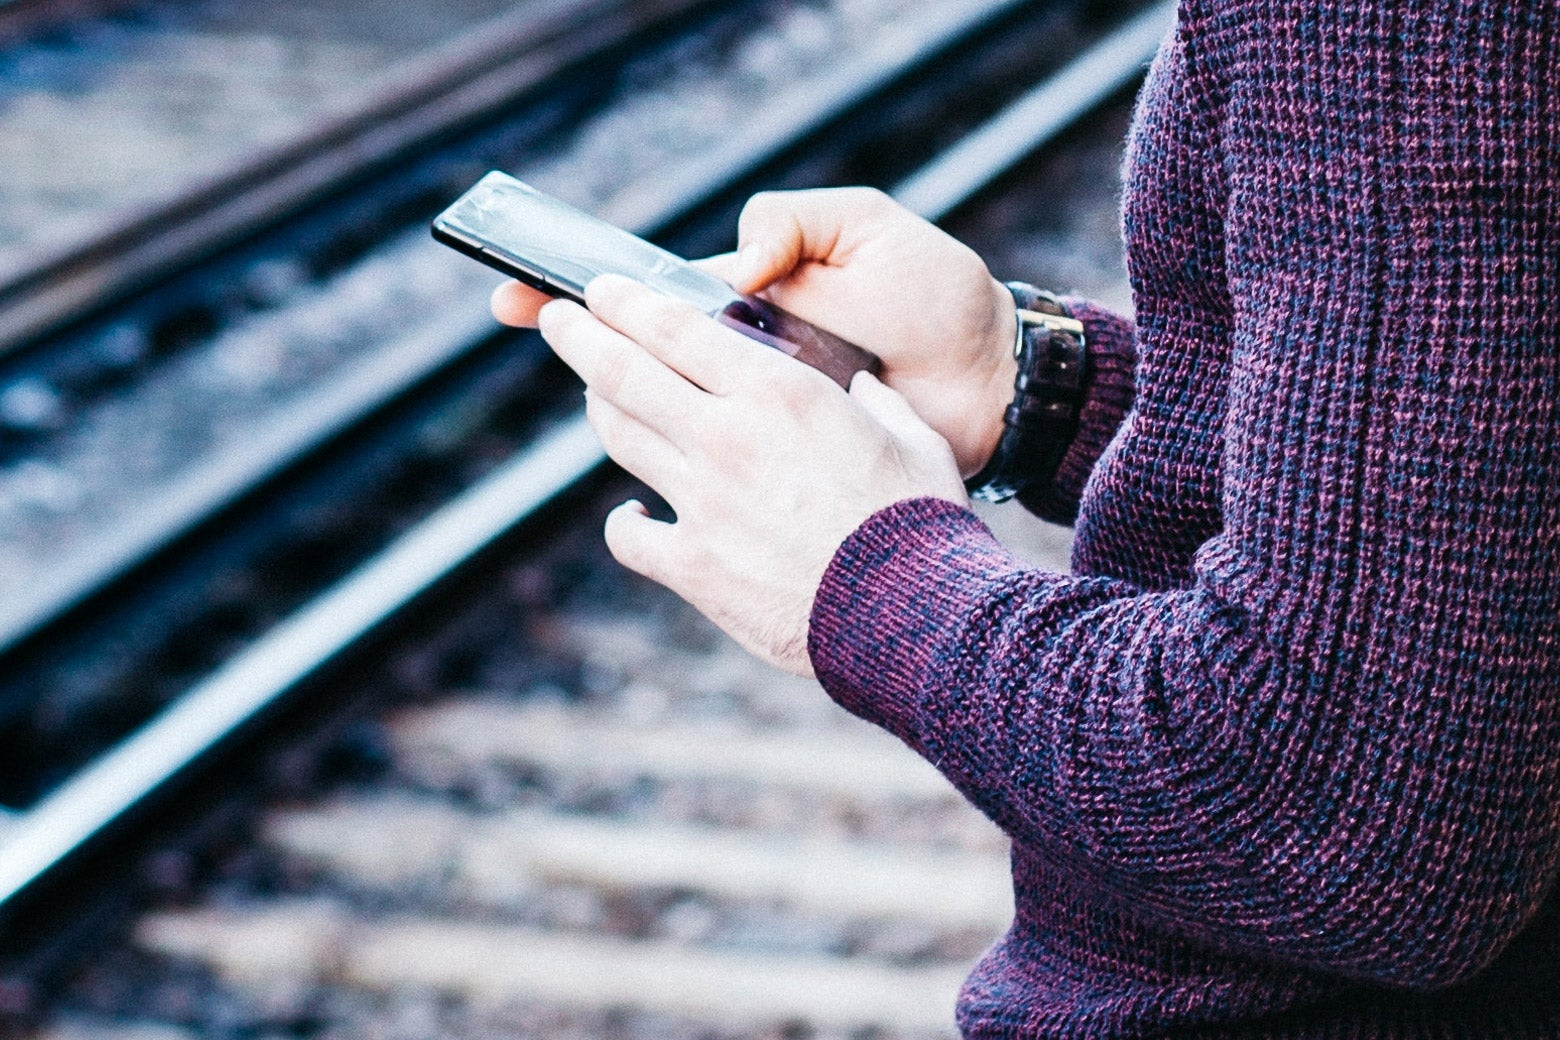 A man types on his phone while waiting for a train.